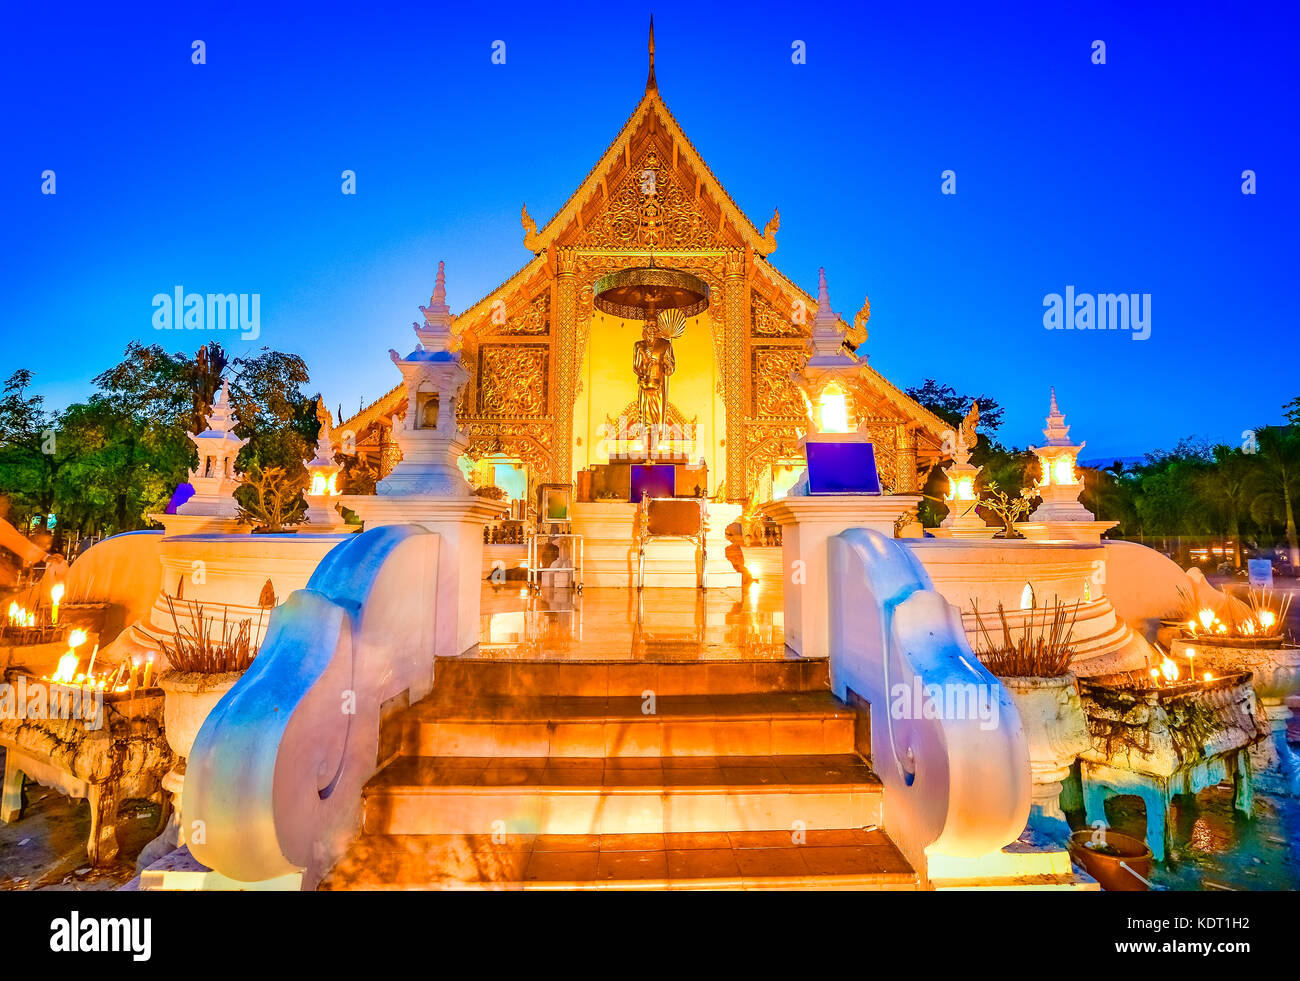 Wat Phra Singh Woramahaviharn located in the western part of the old city center of Chiang Mai,Thailand, Asia Stock Photo